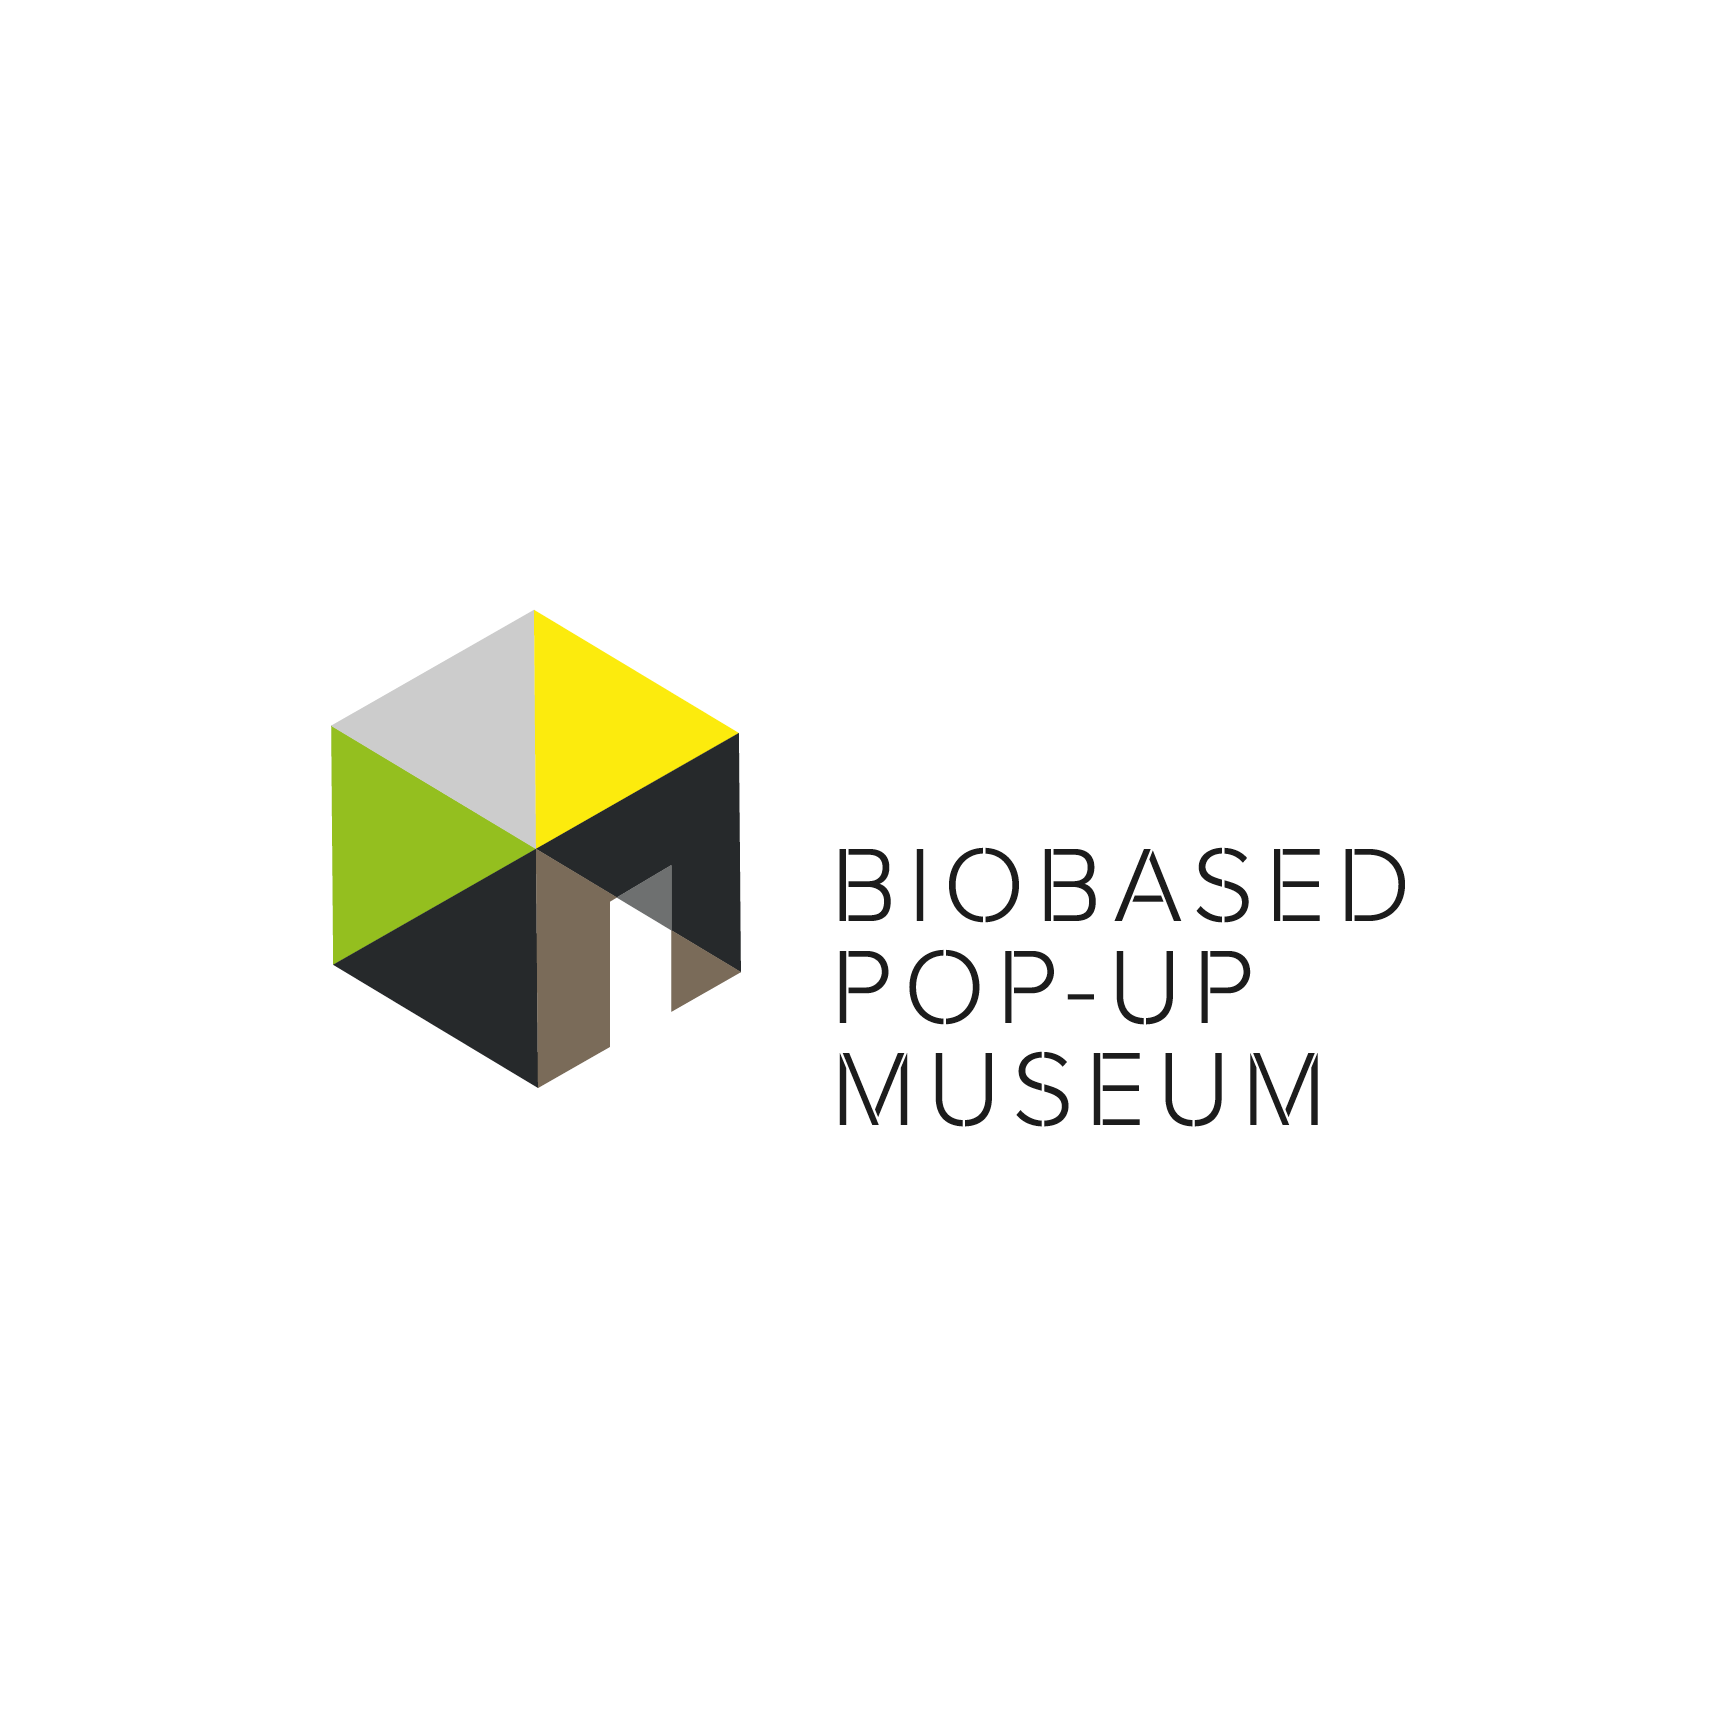 Bio Based pop-up museum expositie huisstijl